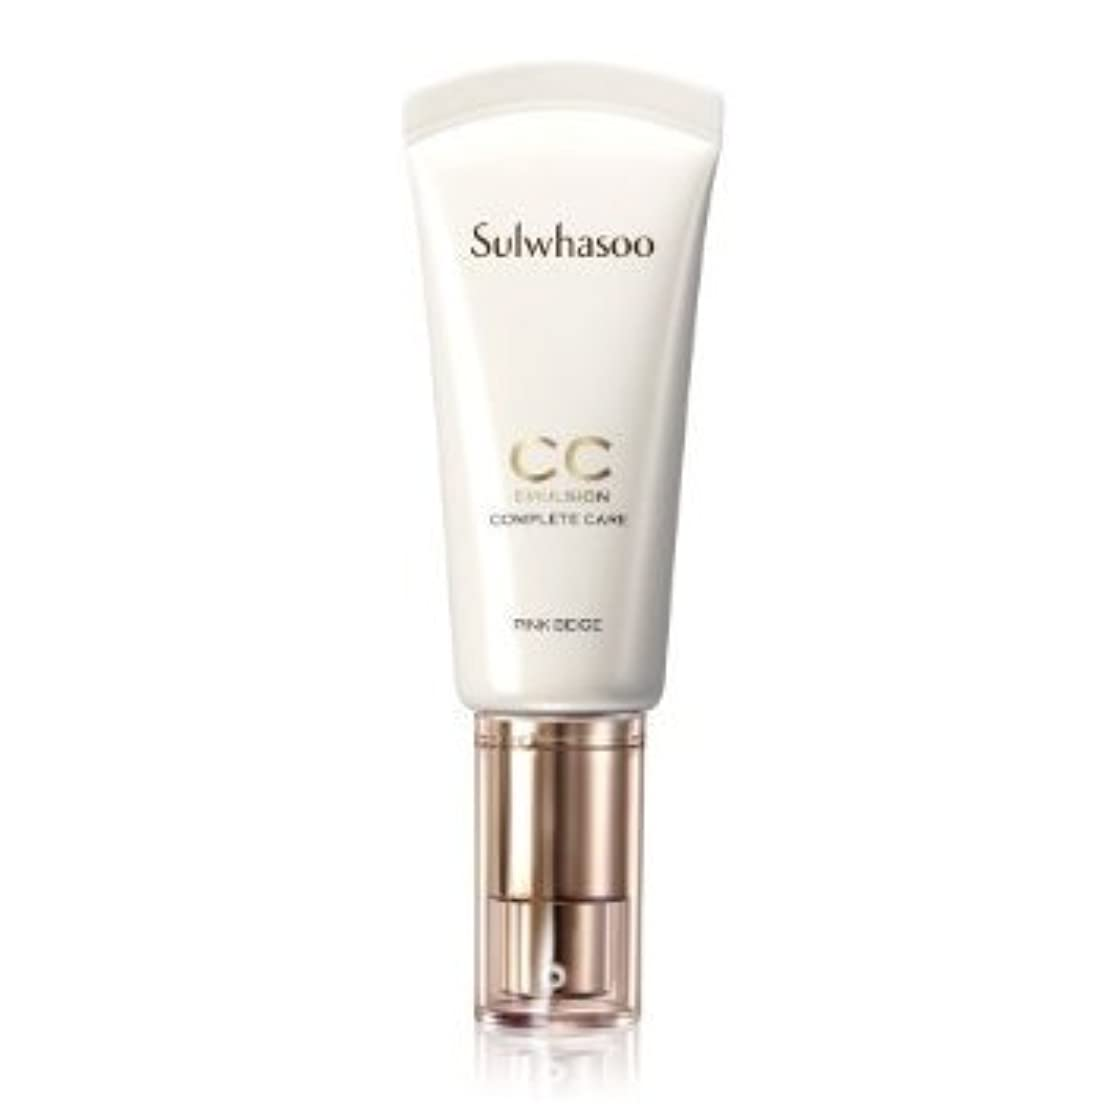 飢饉名前でシガレットSulwhasoo CC Emulsion BB Cream Blemish Balm #02 Medium Beige[並行輸入品]